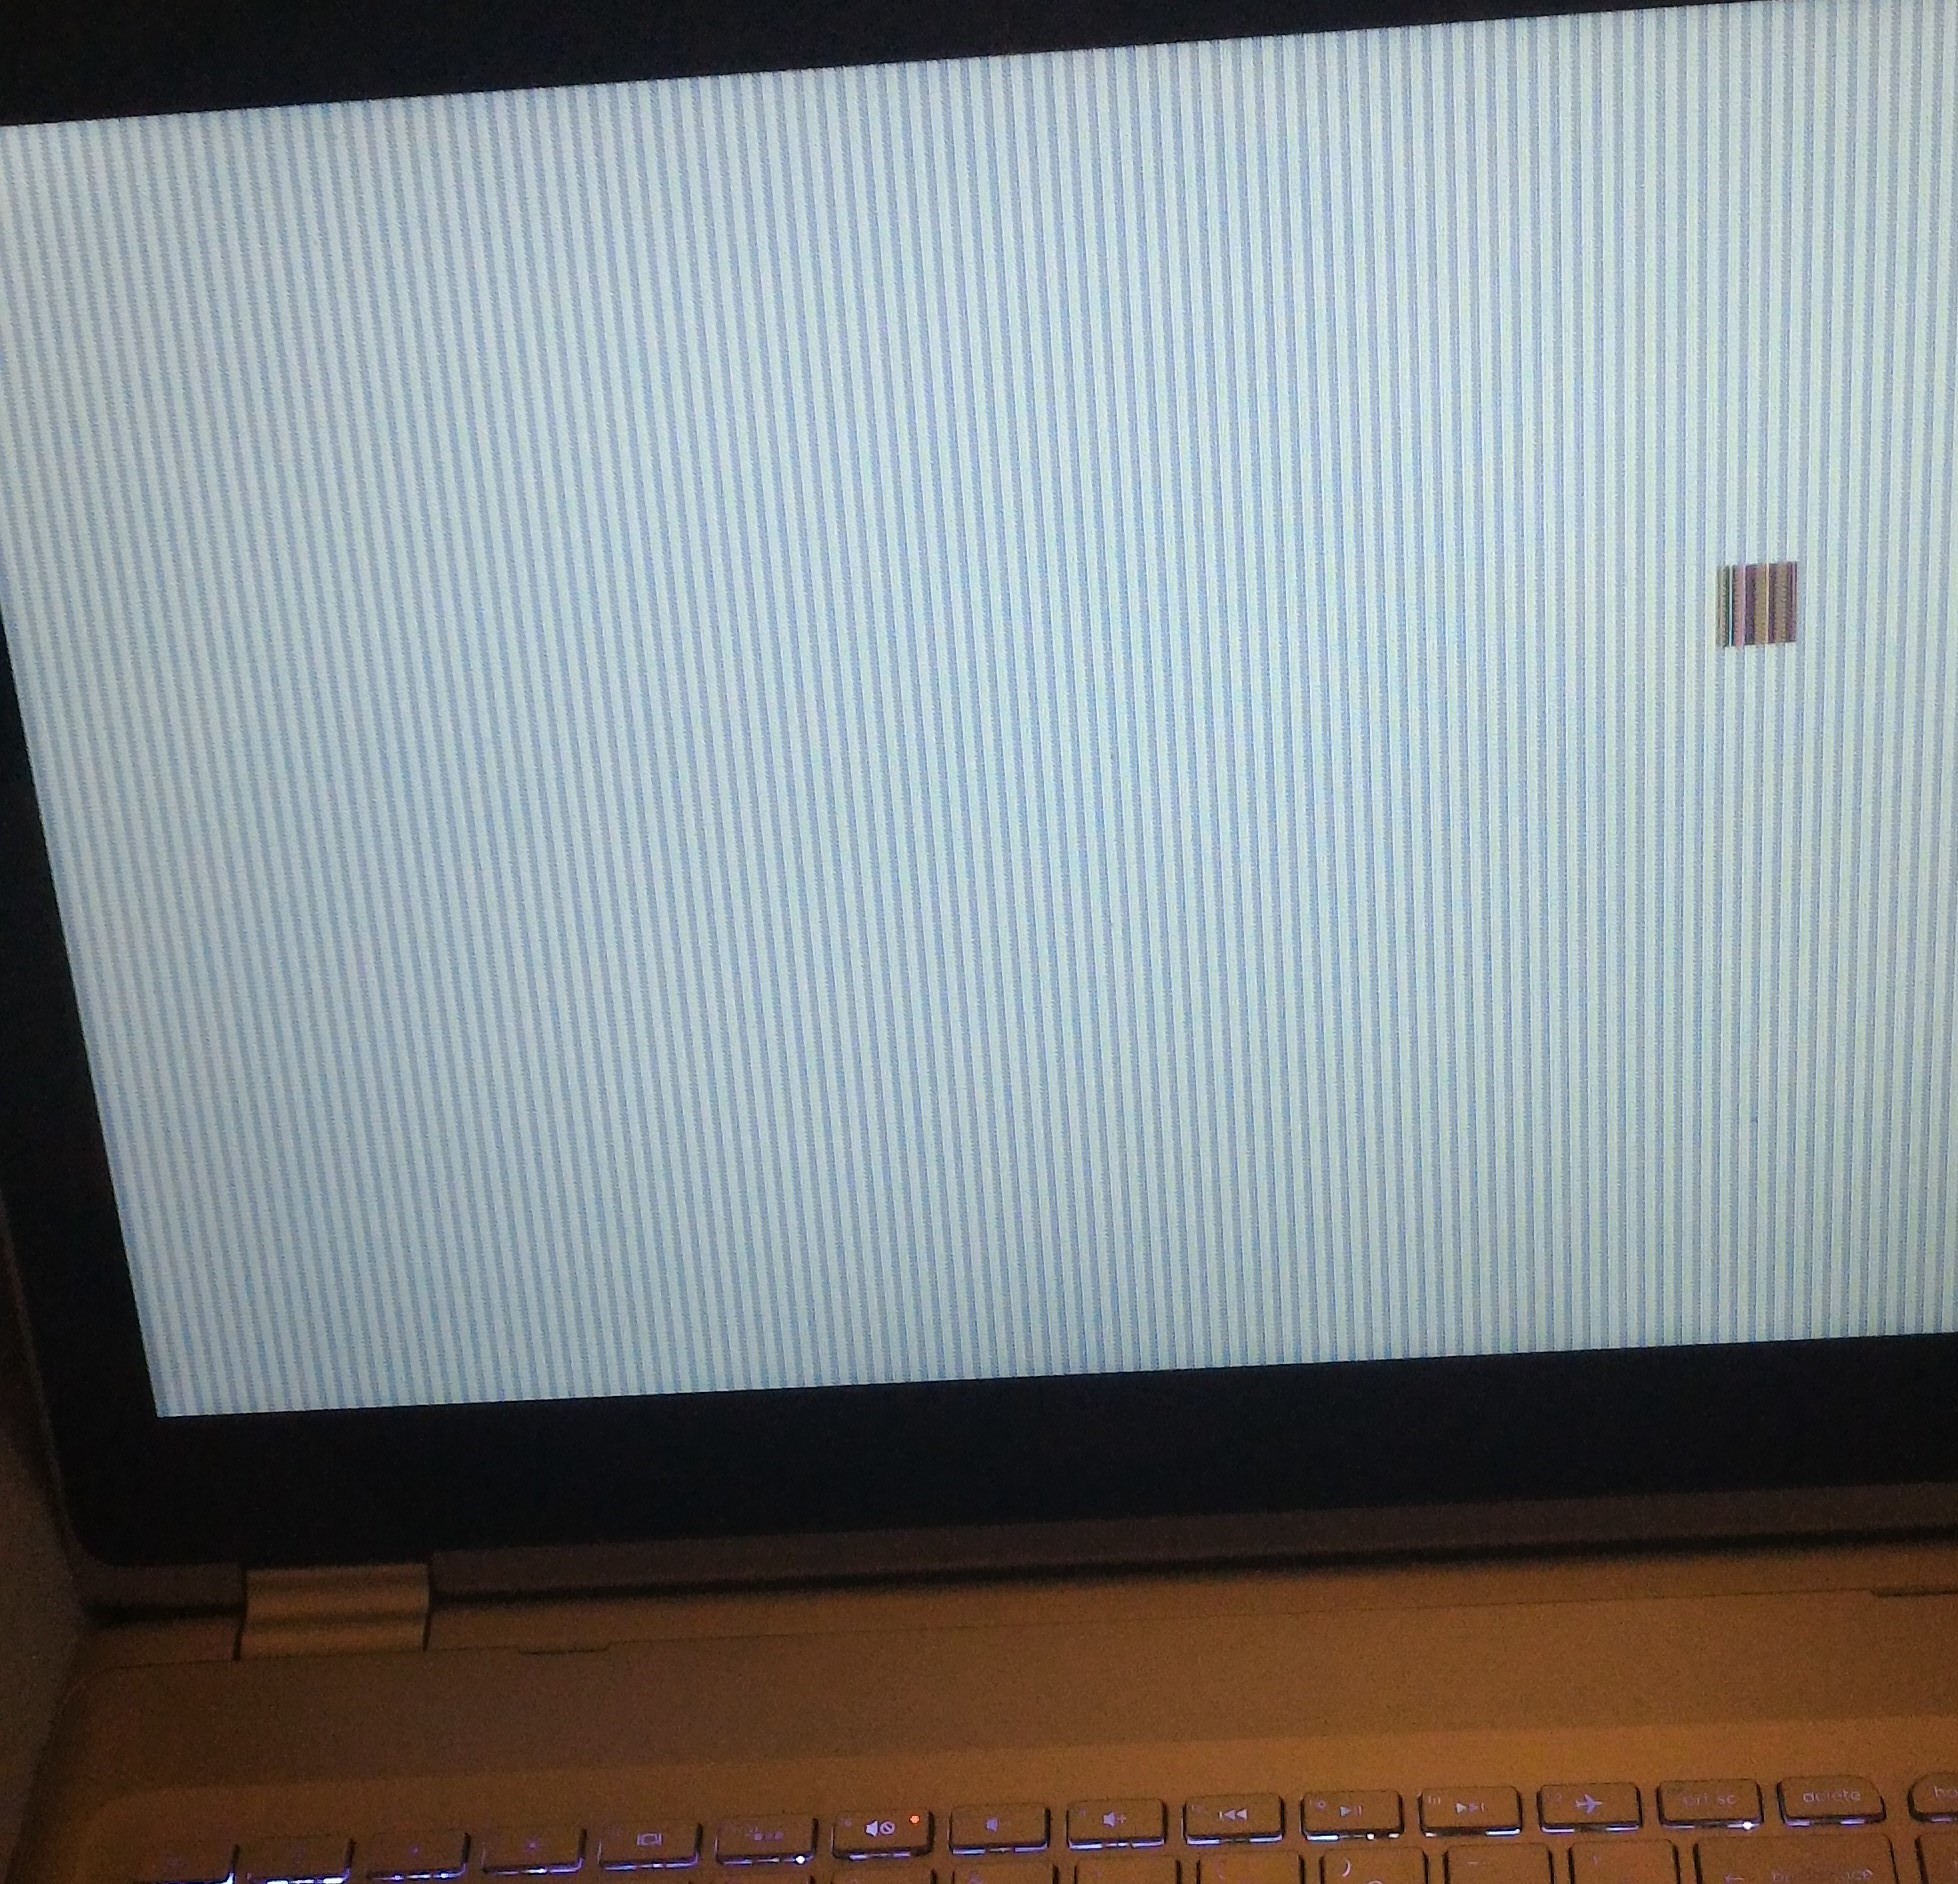 Solved: Pixelated Display After Updating Bios - HP Support